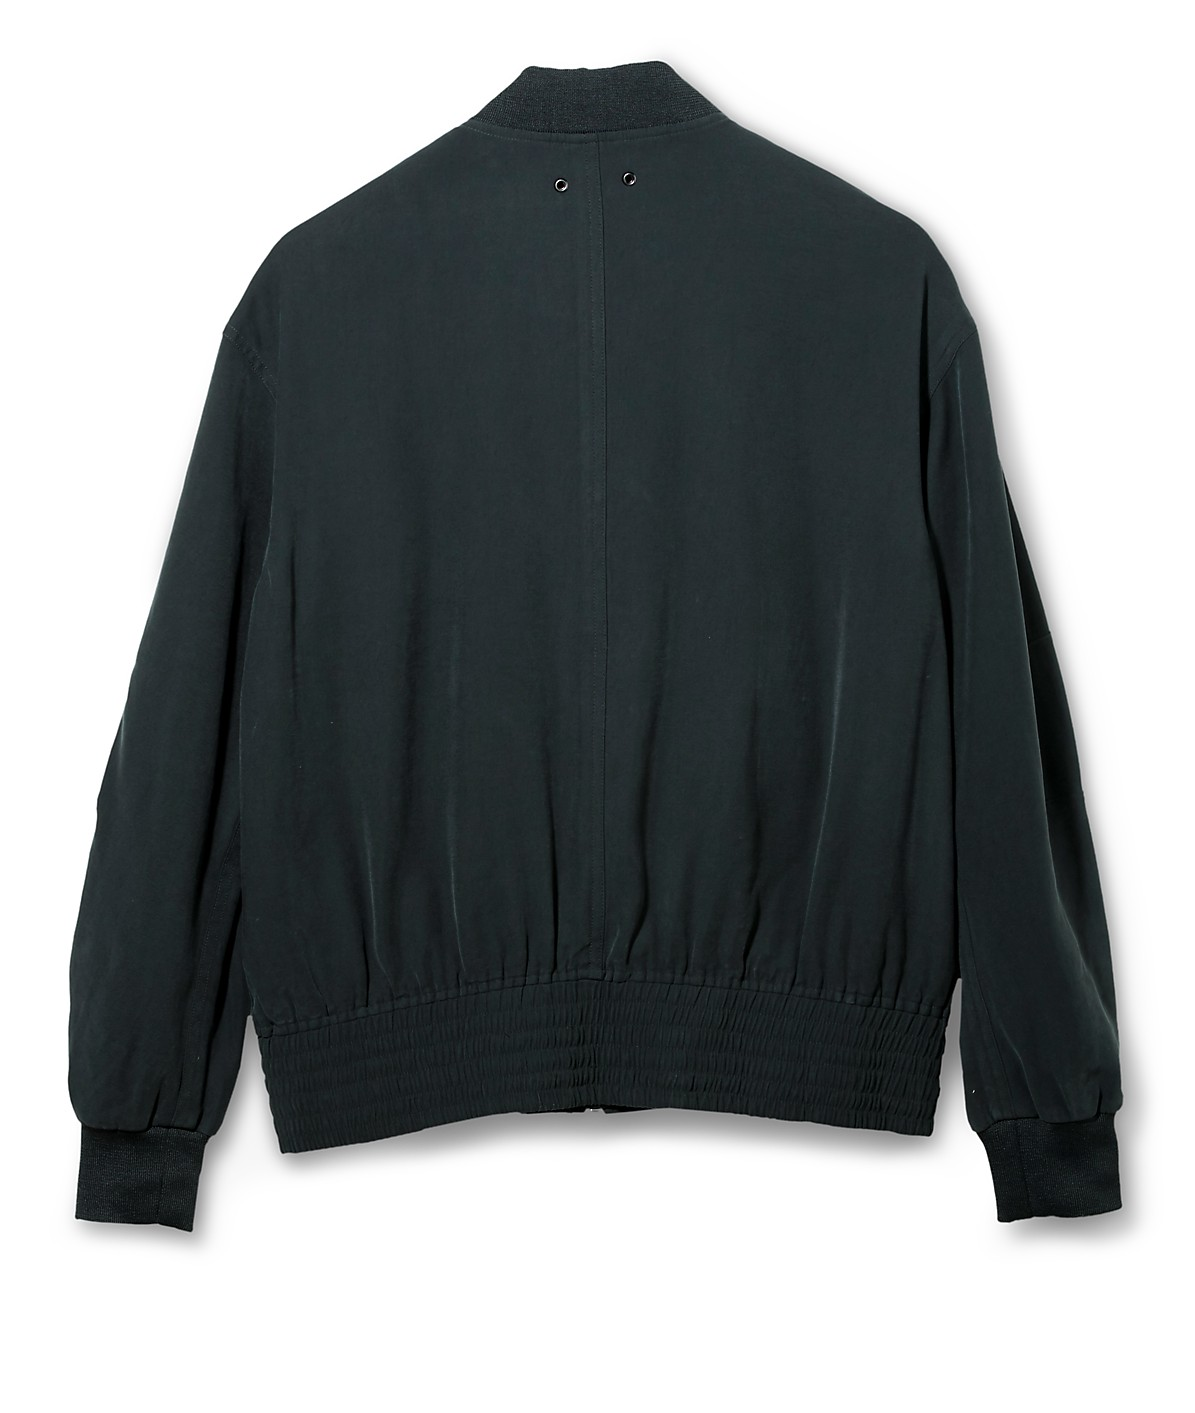 Bomber jacket F2172660 from liebeskind